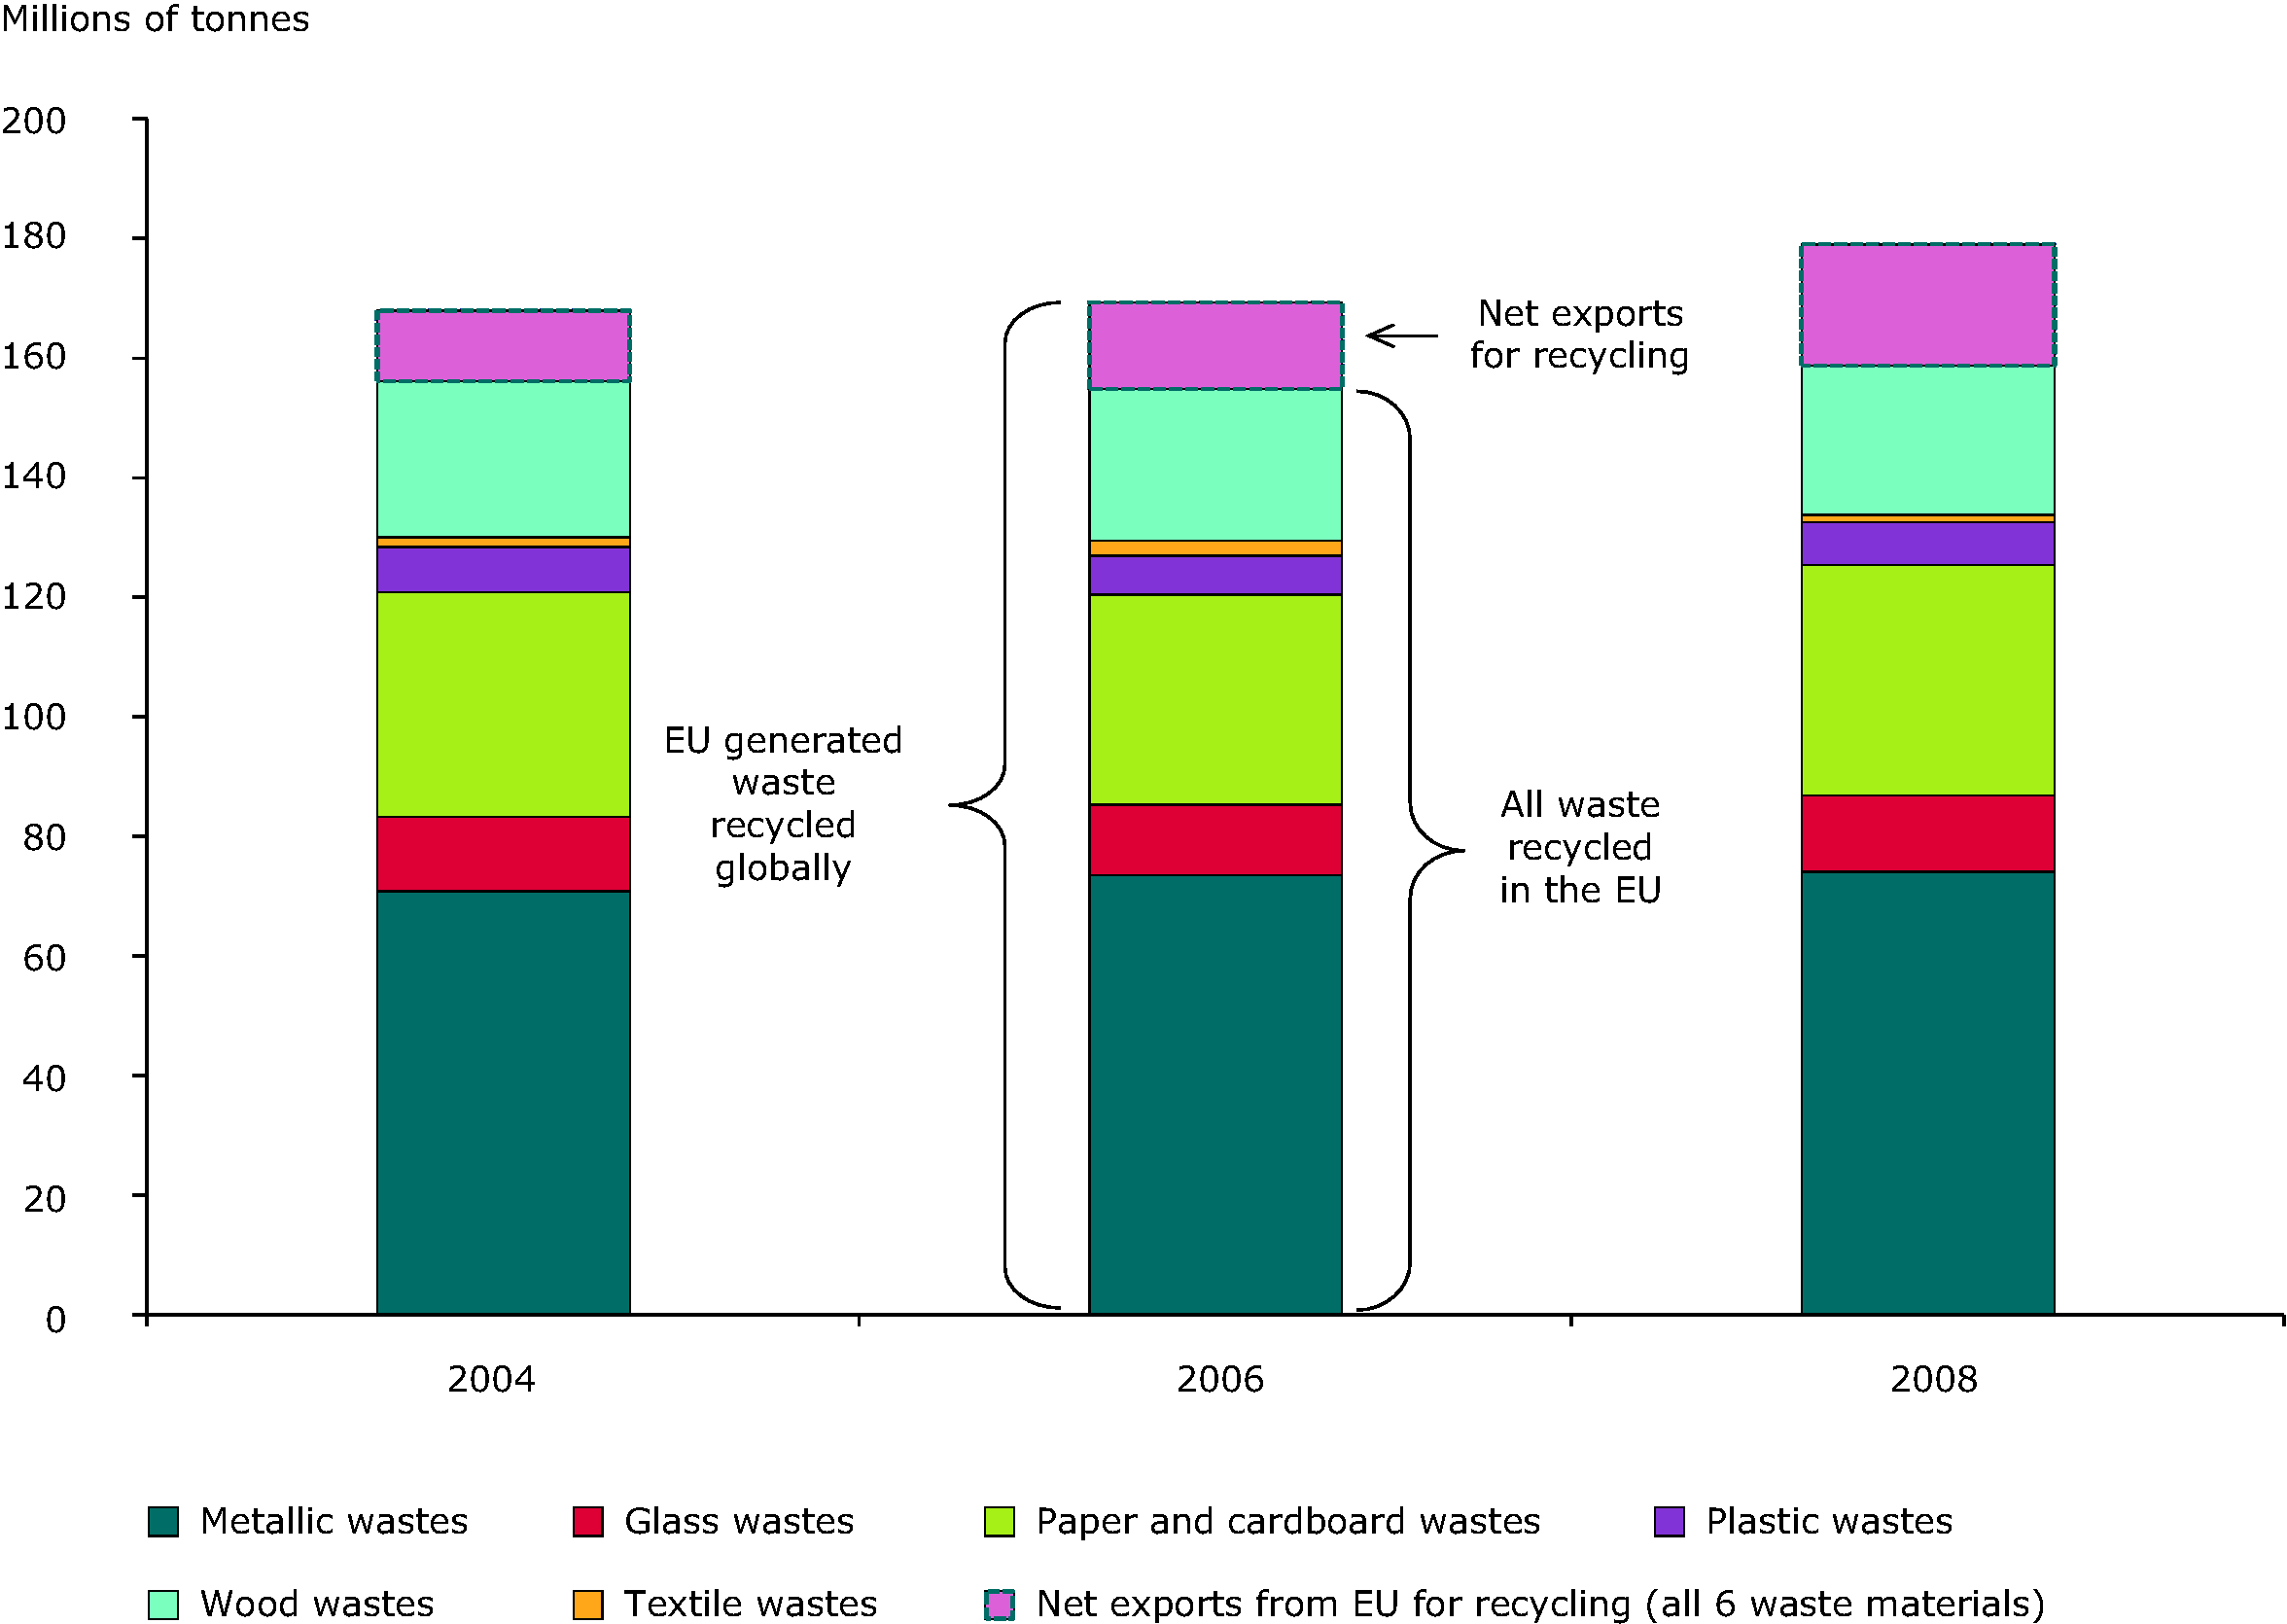 Total recycled quantities for six key material types in the EU27 including exports for recycling